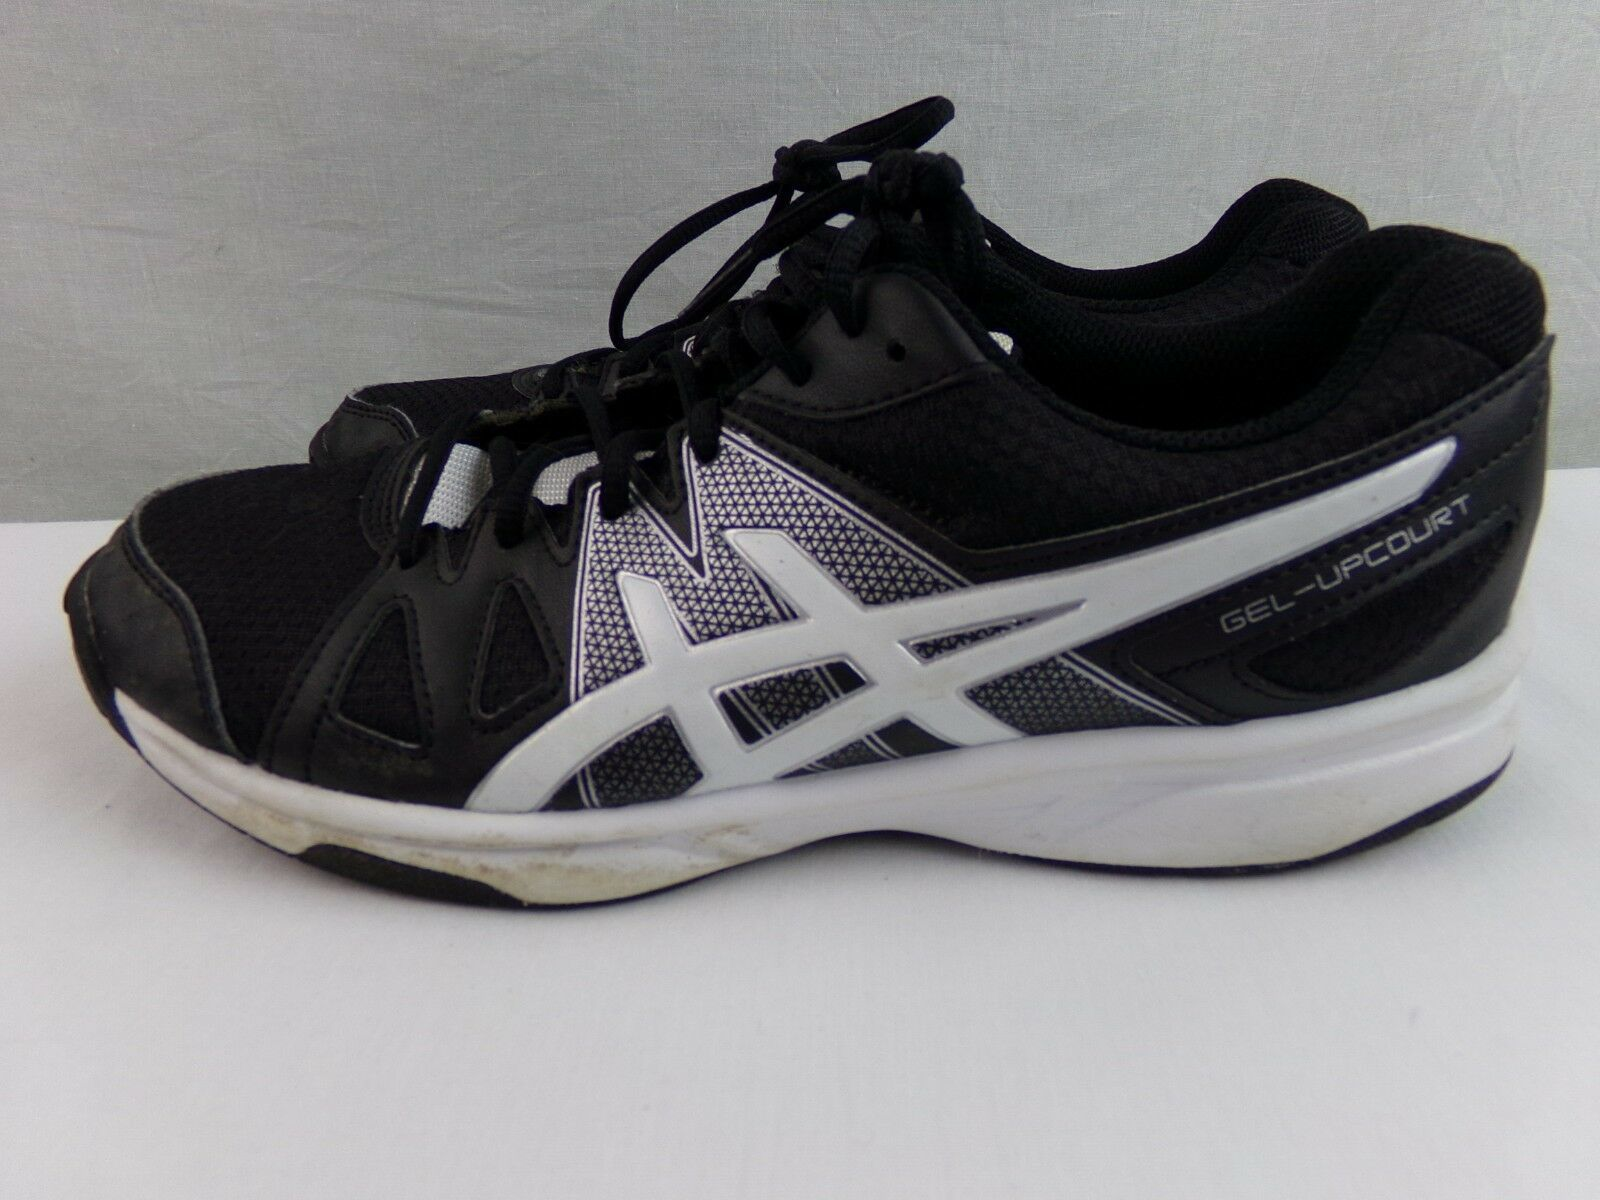 Women's Black White Asics Sneakers Athletic Shoes Size 9